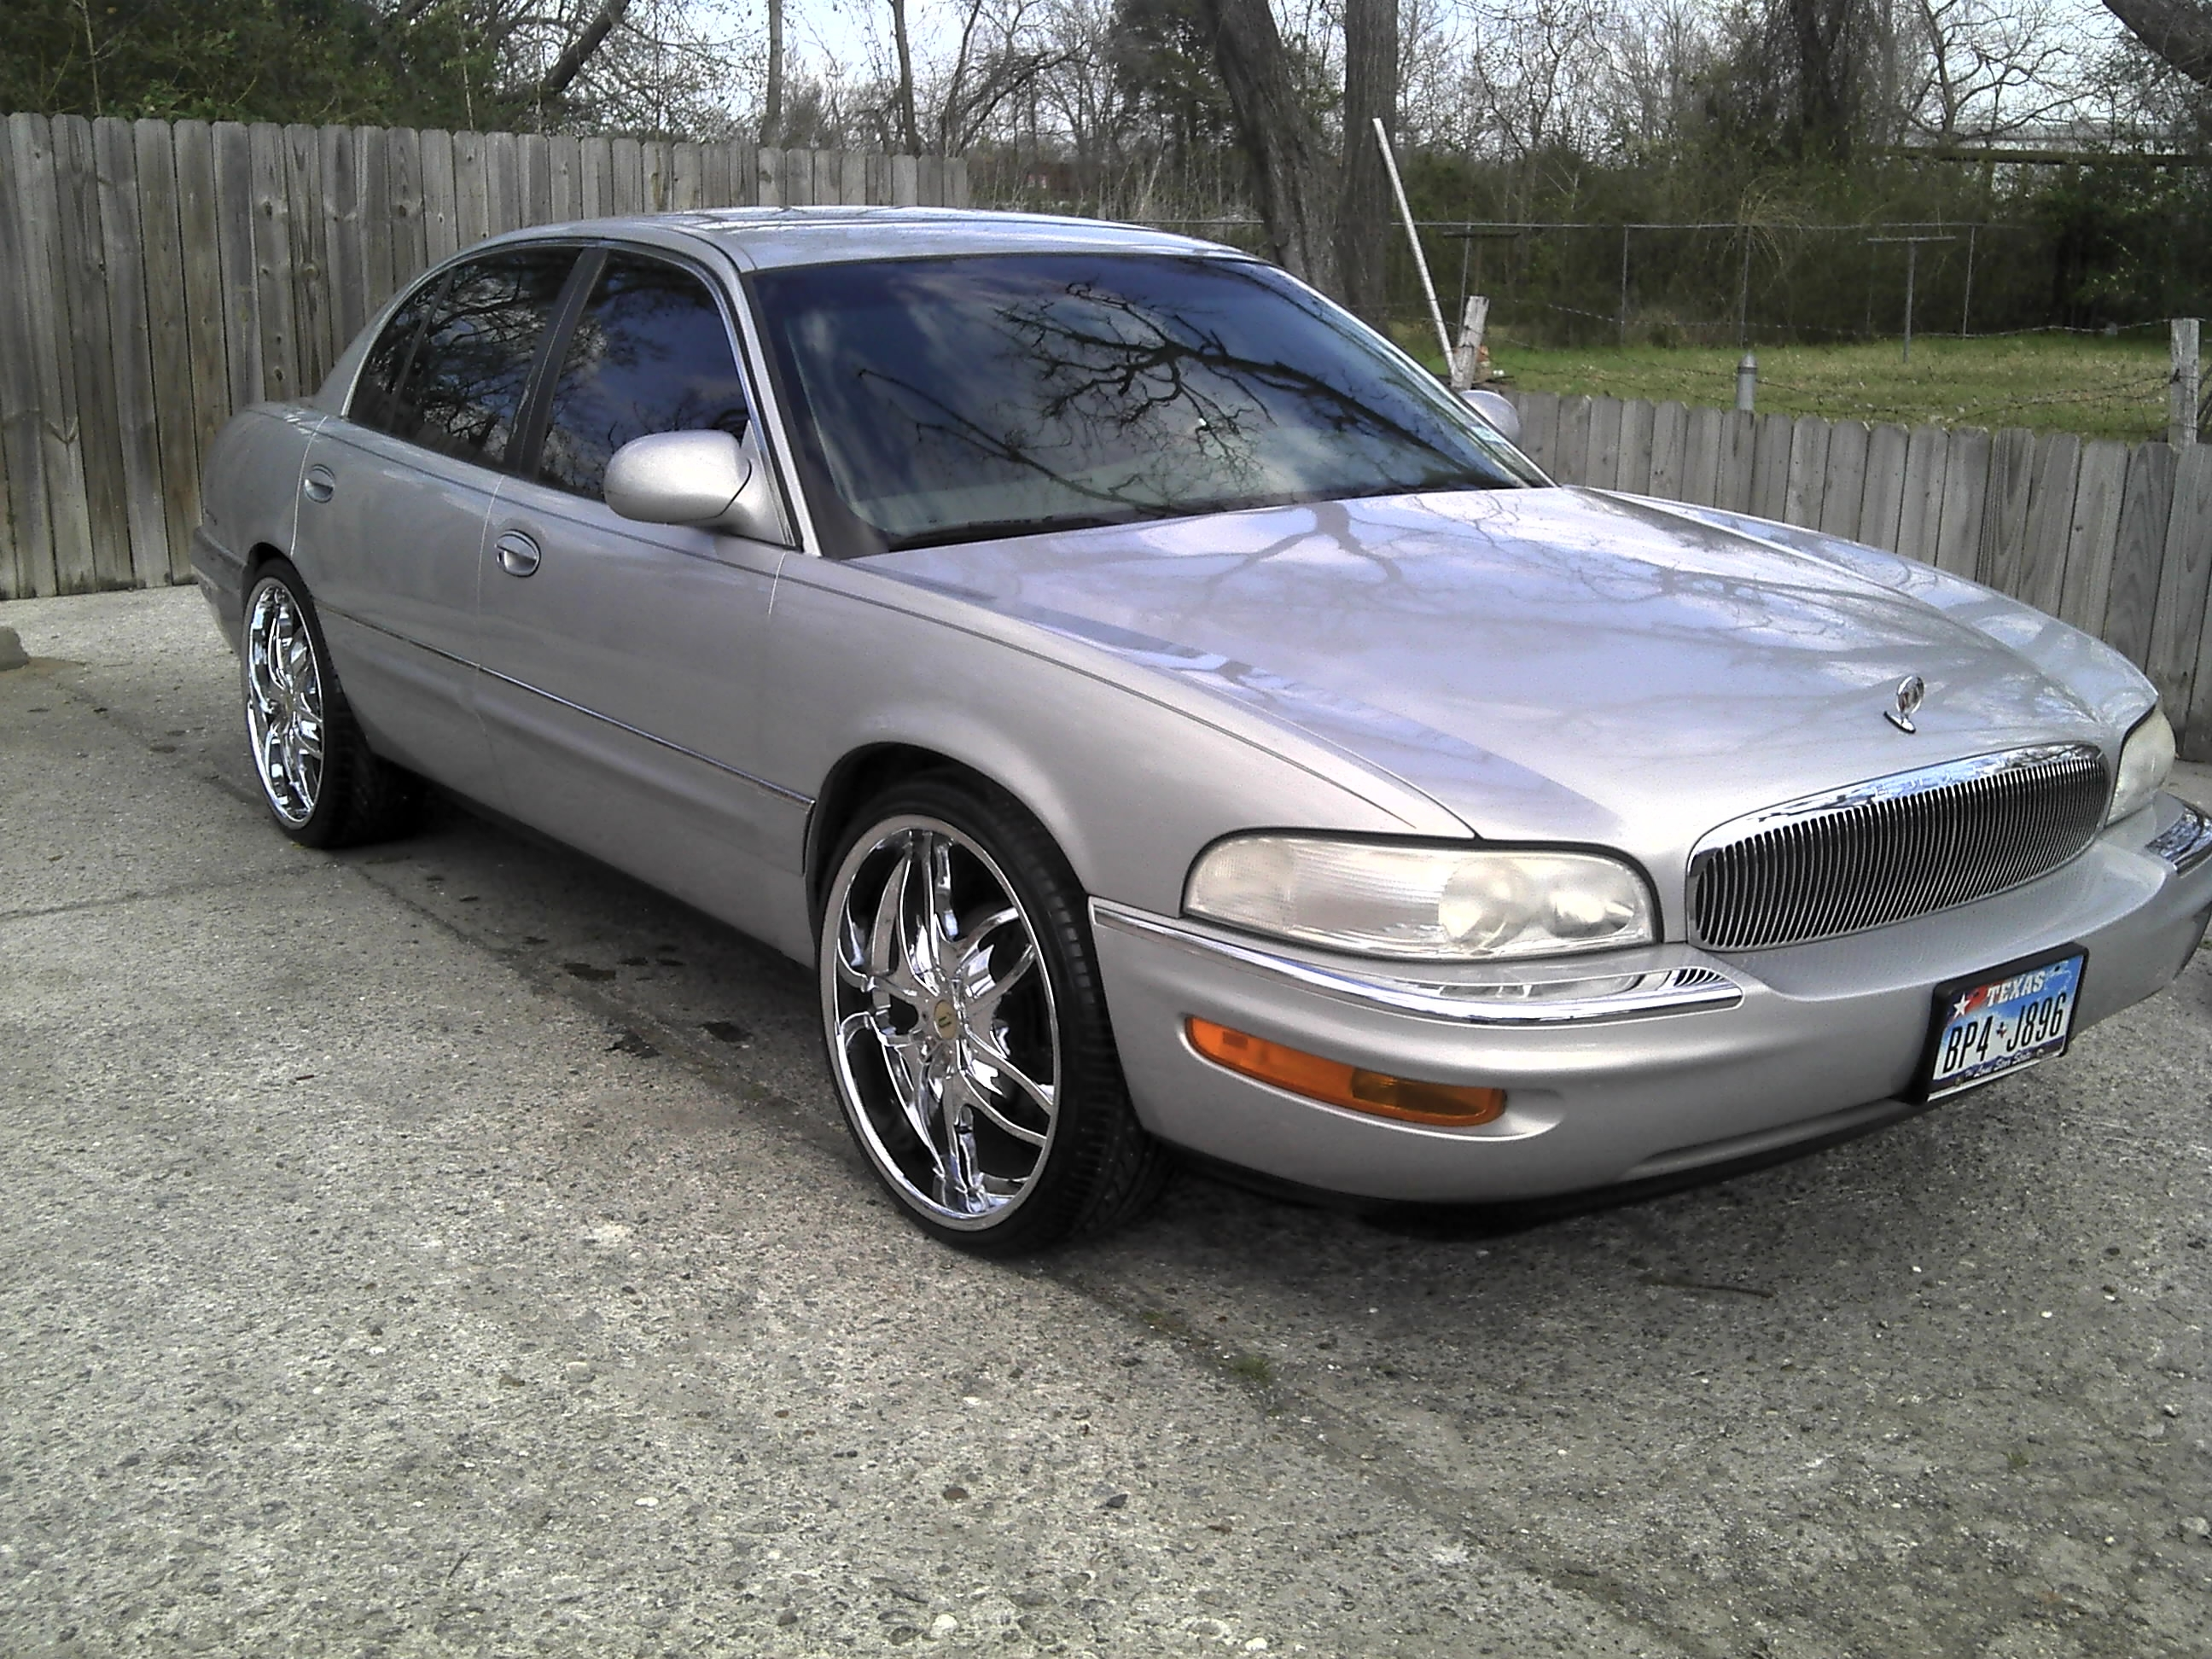 H-Town_Nawf_Sida 1998 Buick Park Avenue